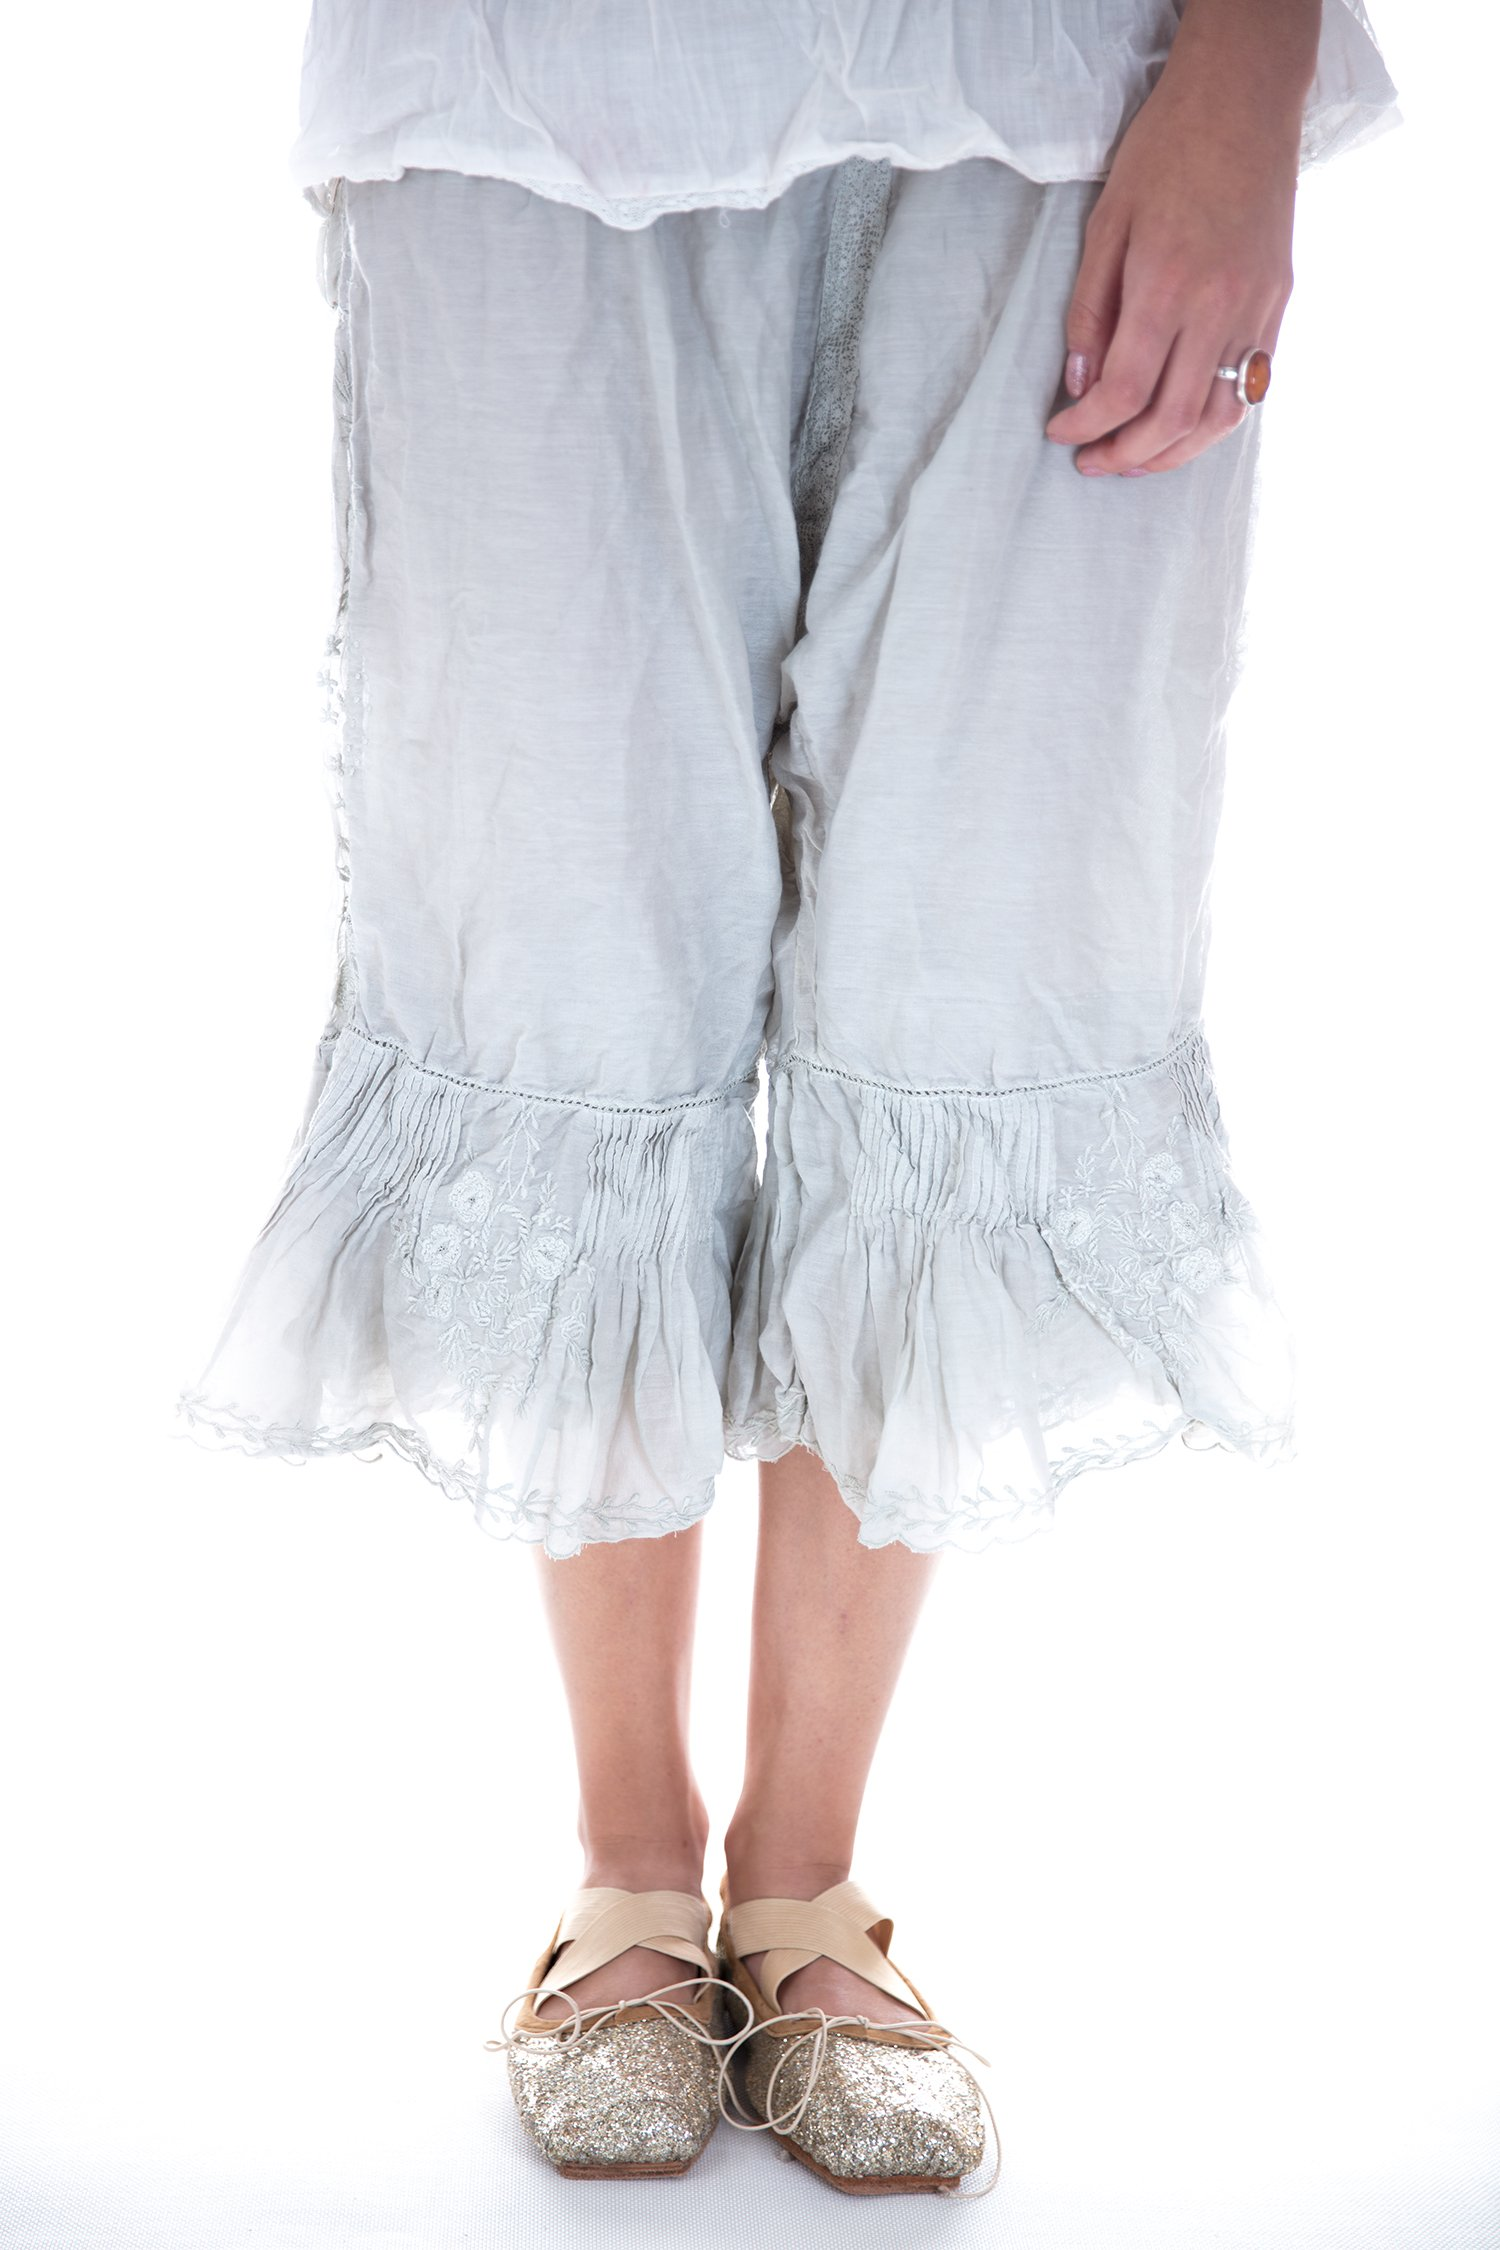 Magnolia Pearl Cotton Silk Wedding Night Bloomers with Floral Emb by Magnolia Pearl